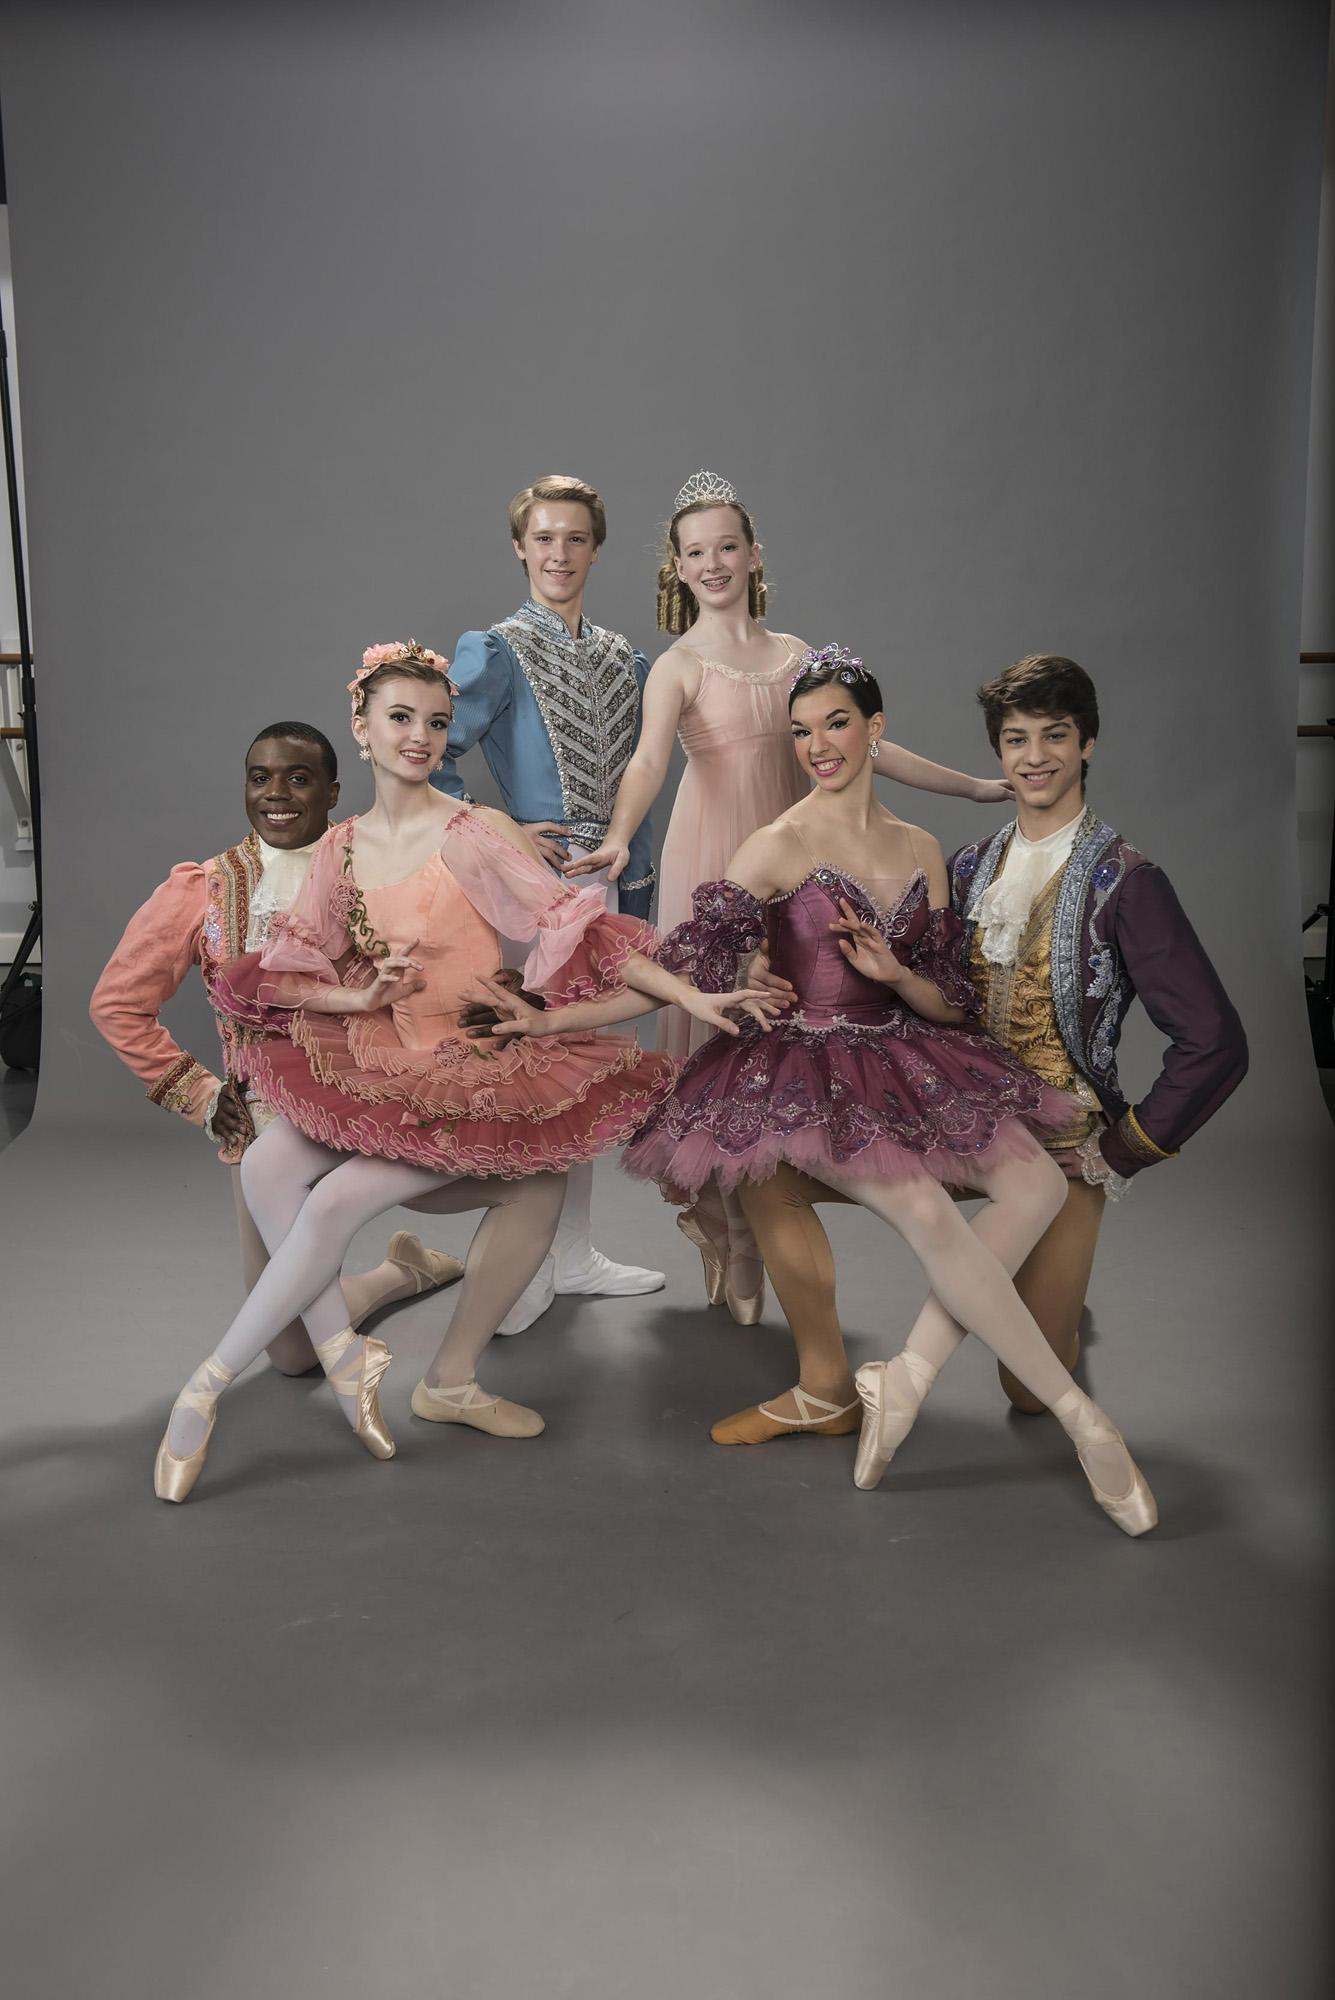 After+the+17th+year+of+performing+The+Nucracker%2C+CU+Ballet+brings+new+improvements+to+the+classic+holiday+ballet.